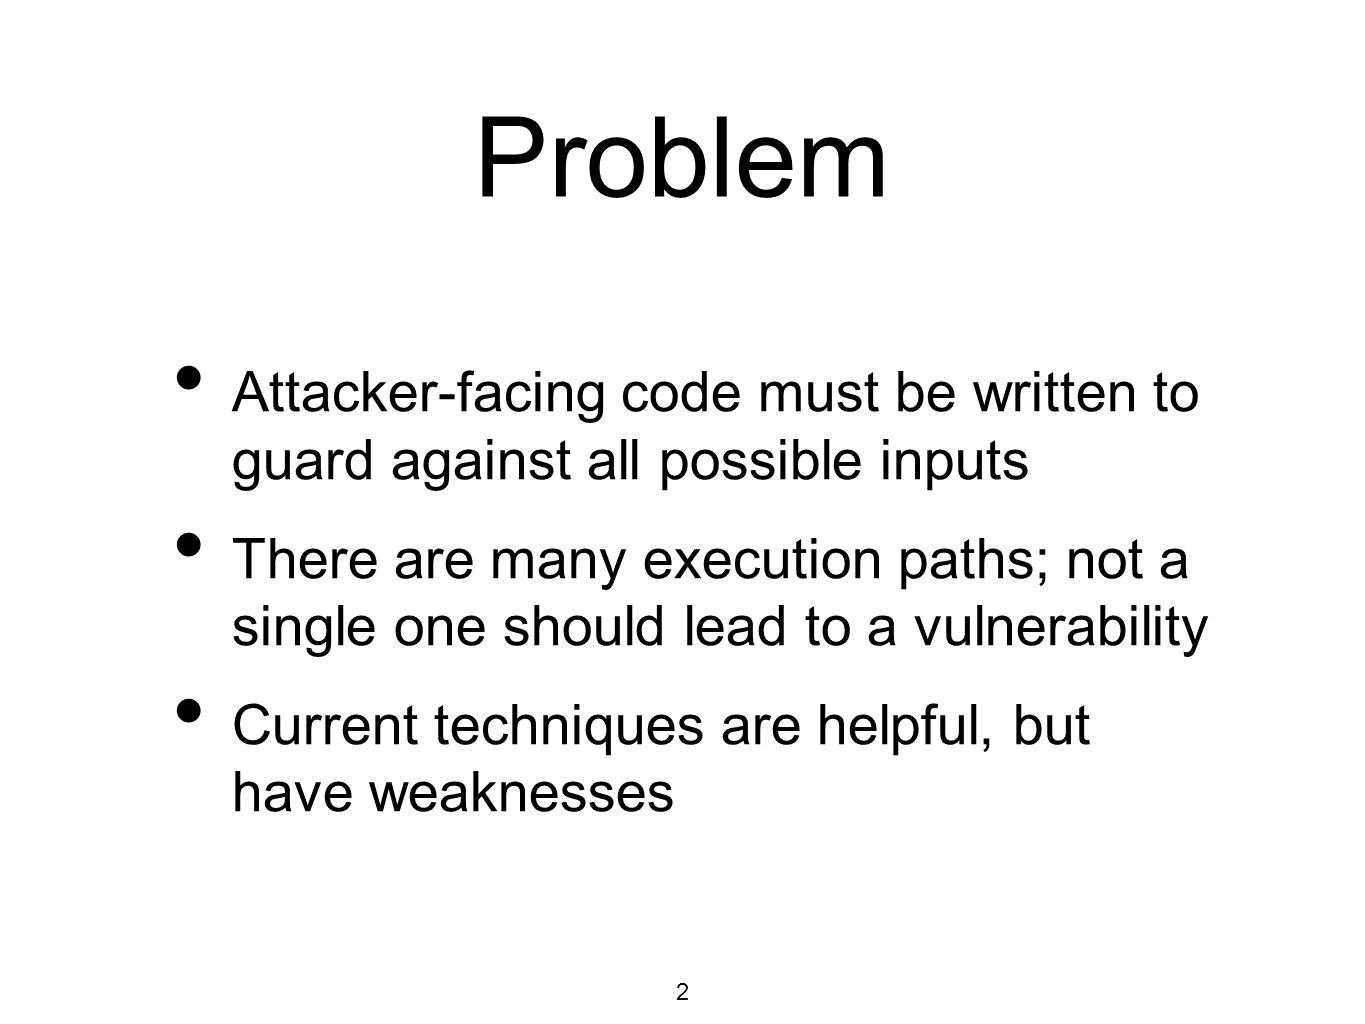 2 Problem Attacker-facing code must be written to guard against all possible inputs There are many execution paths; not a single one should lead to a vulnerability Current techniques are helpful, but have weaknesses